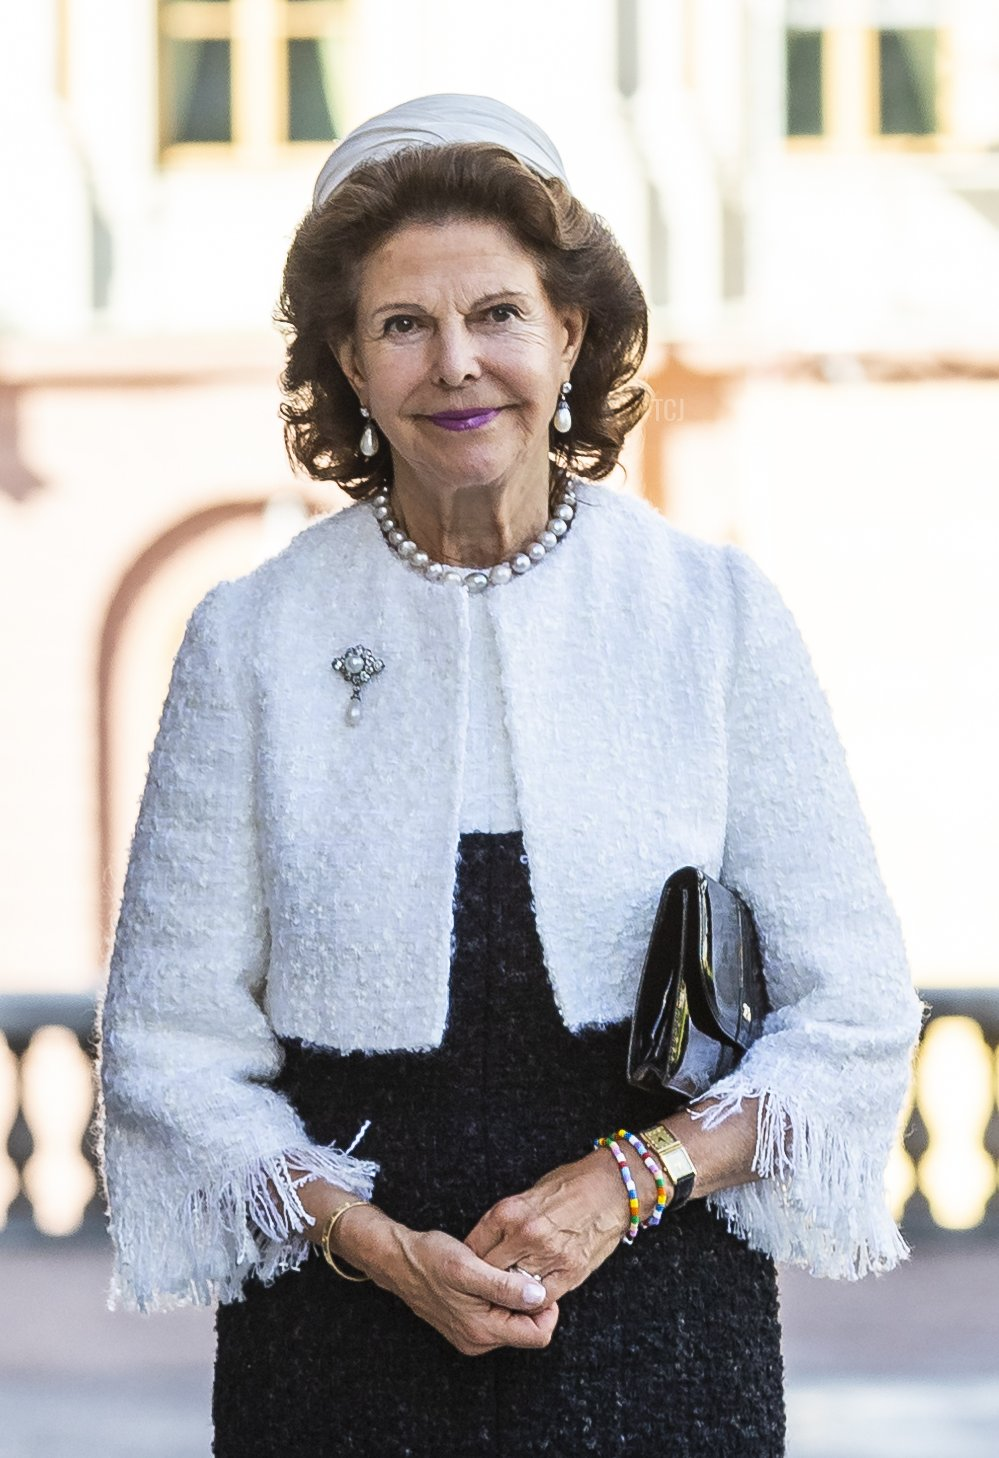 King Carl XVI Gustaf and Queen Silvia of Sweden attend the opening of the Swedish Parliament for the fall session at the Riksdag Parliament building on September 8, 2020 in Stockholm, Sweden